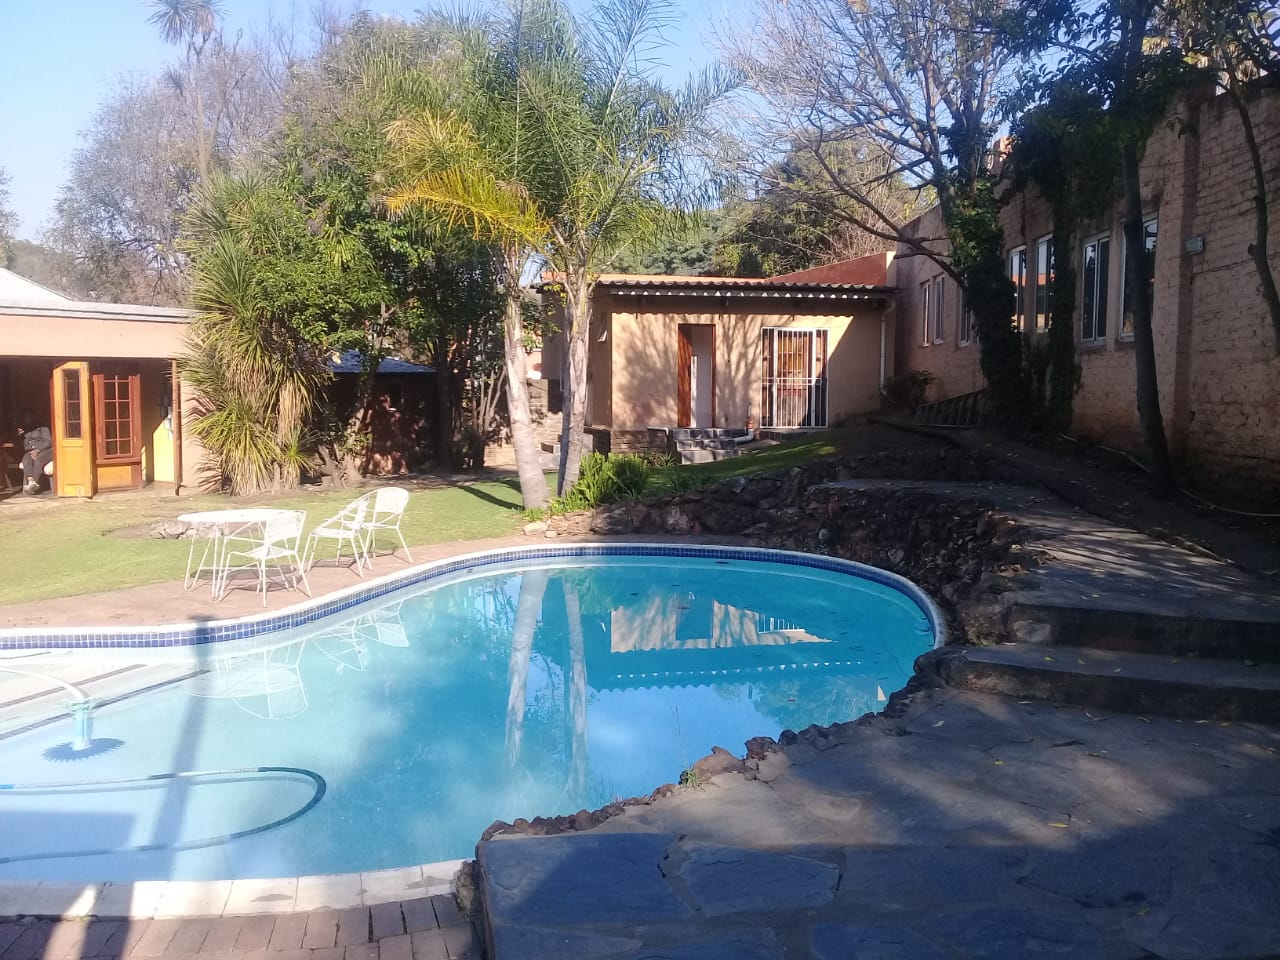 Rooms to let in Johannesburg